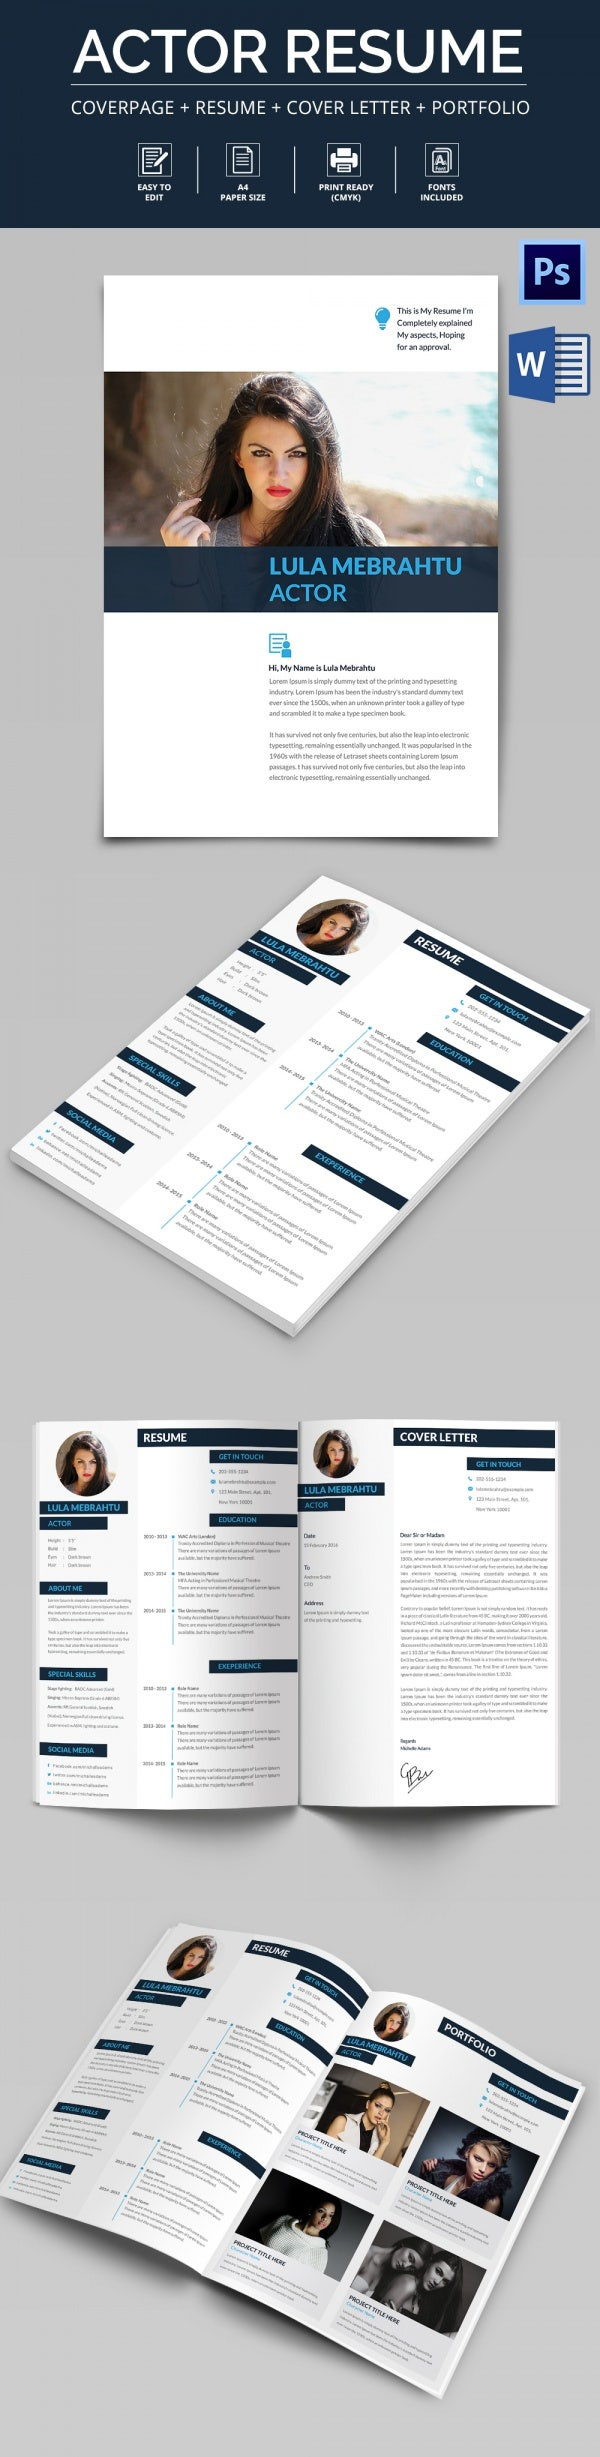 Editable Actor Resume Template